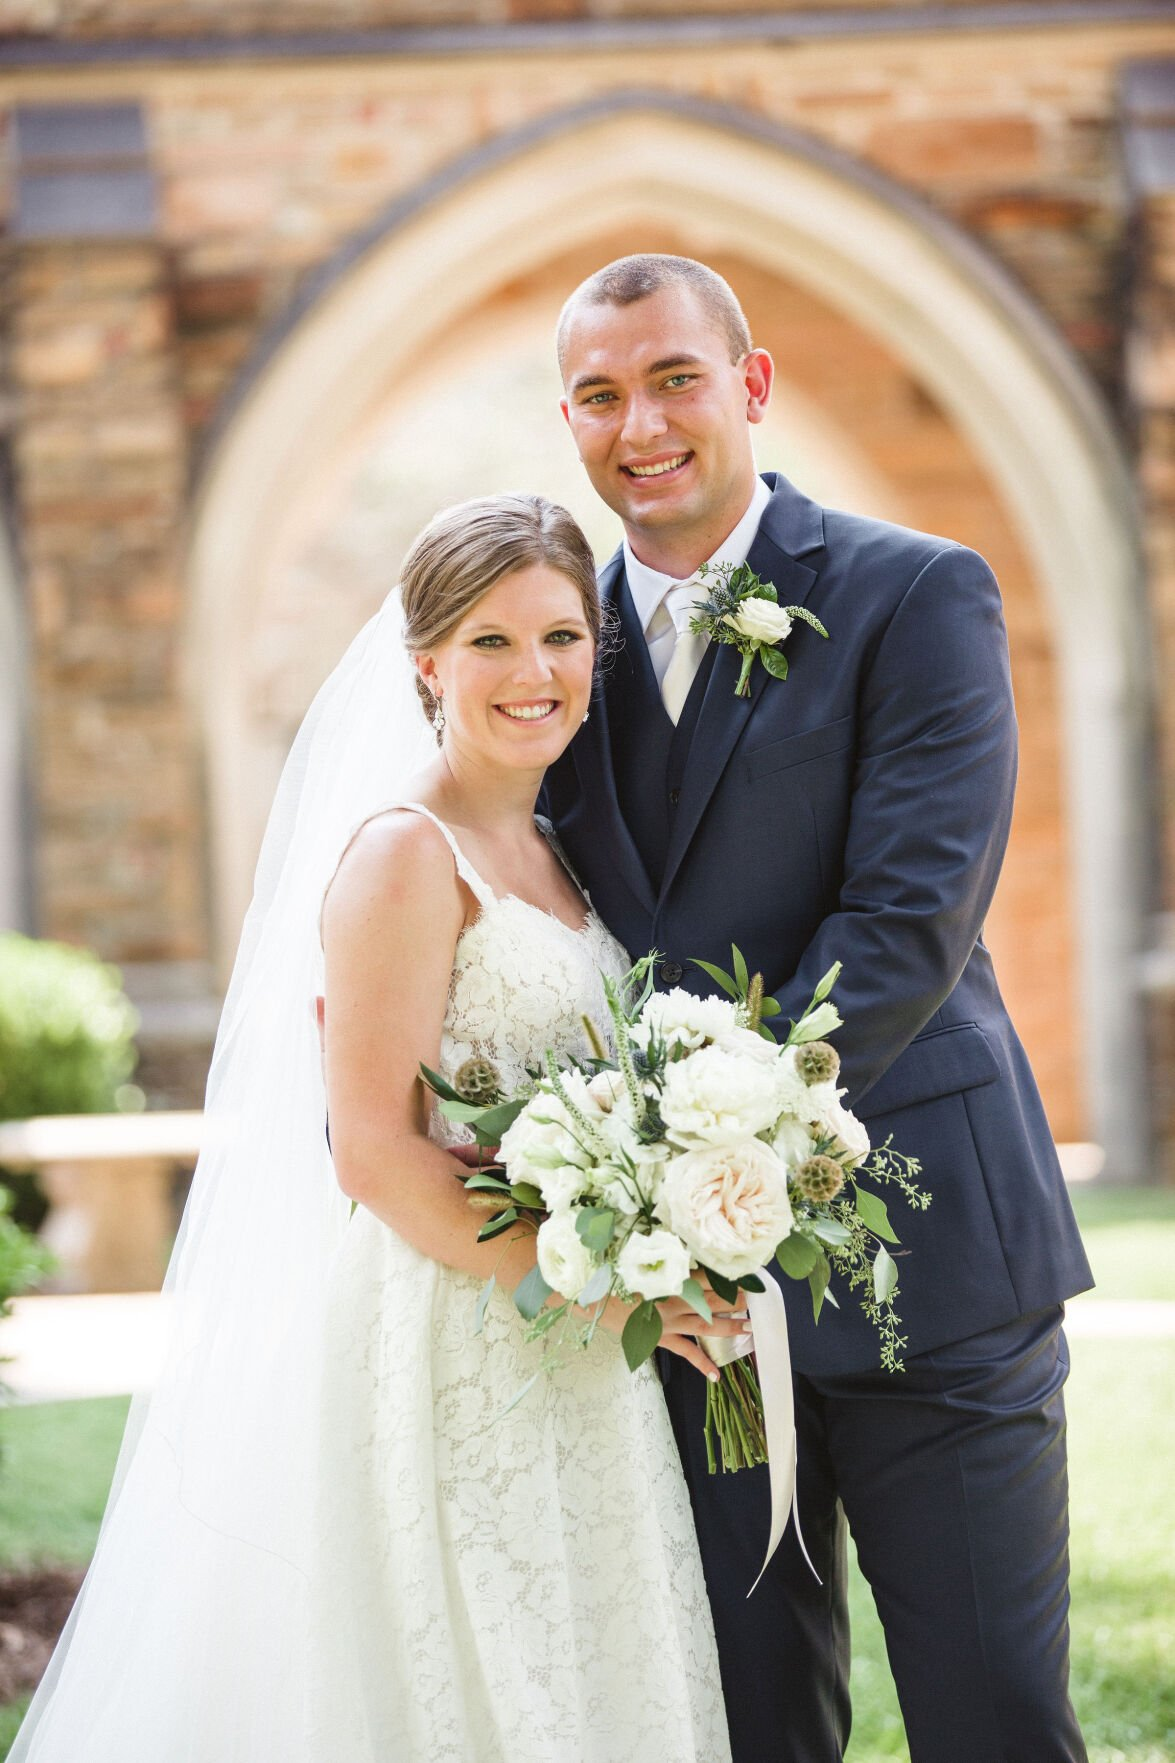 Rachel Lee and Isaac Edmiston exchange vows at First United Methodist Church - 1